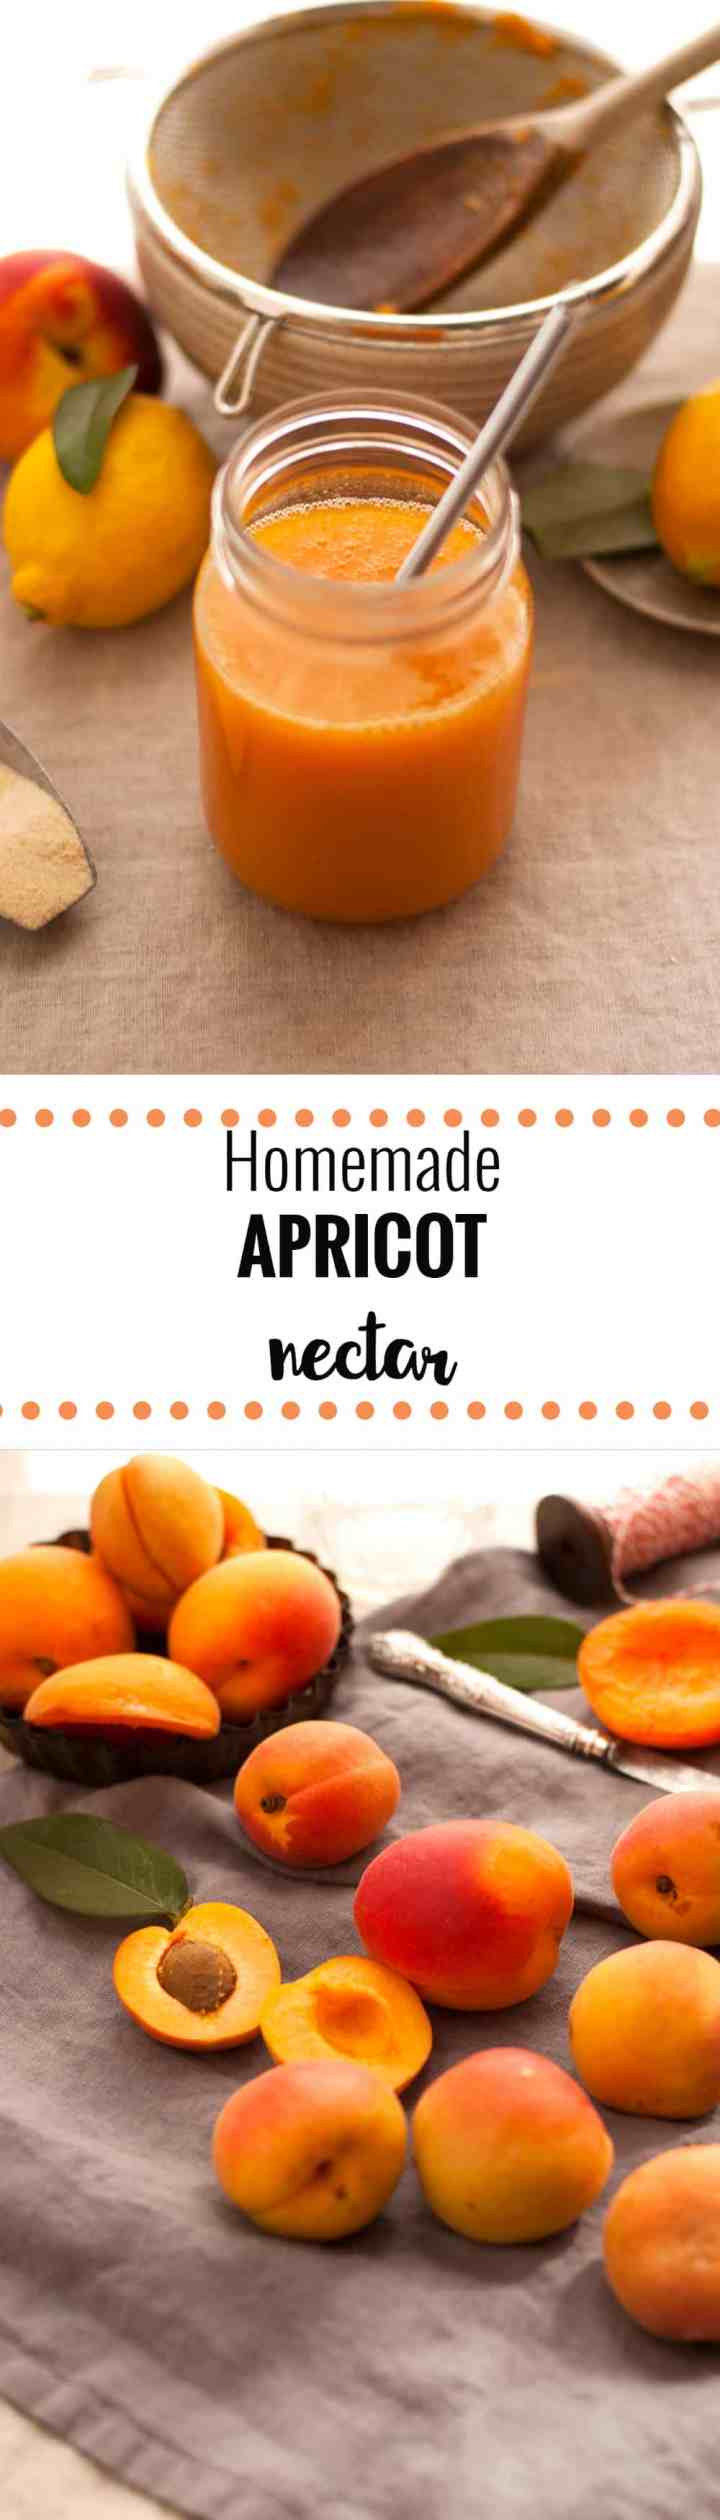 Easy recipe for sweet, juicy and quenching homemade apricot nectar. Made with only 5 ingredients, can be canned and stored for up to 6 months! | via annabanana.co